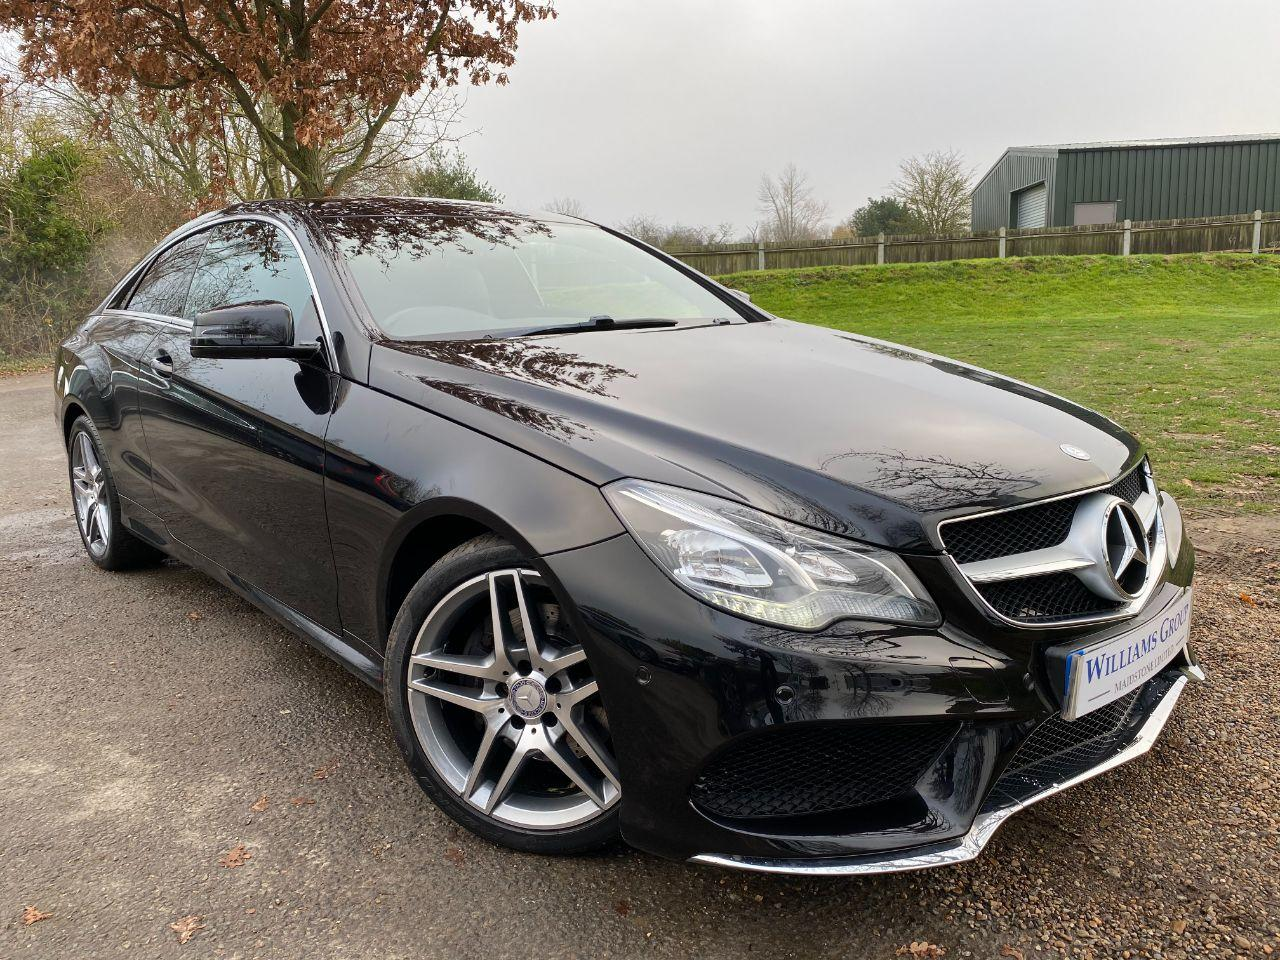 Mercedes-Benz E Class 2.1 E220 CDI AMG Sport 2dr 7G-Tronic (Full Service History! Nav! ++) Coupe Diesel Obsidian Black Metallic